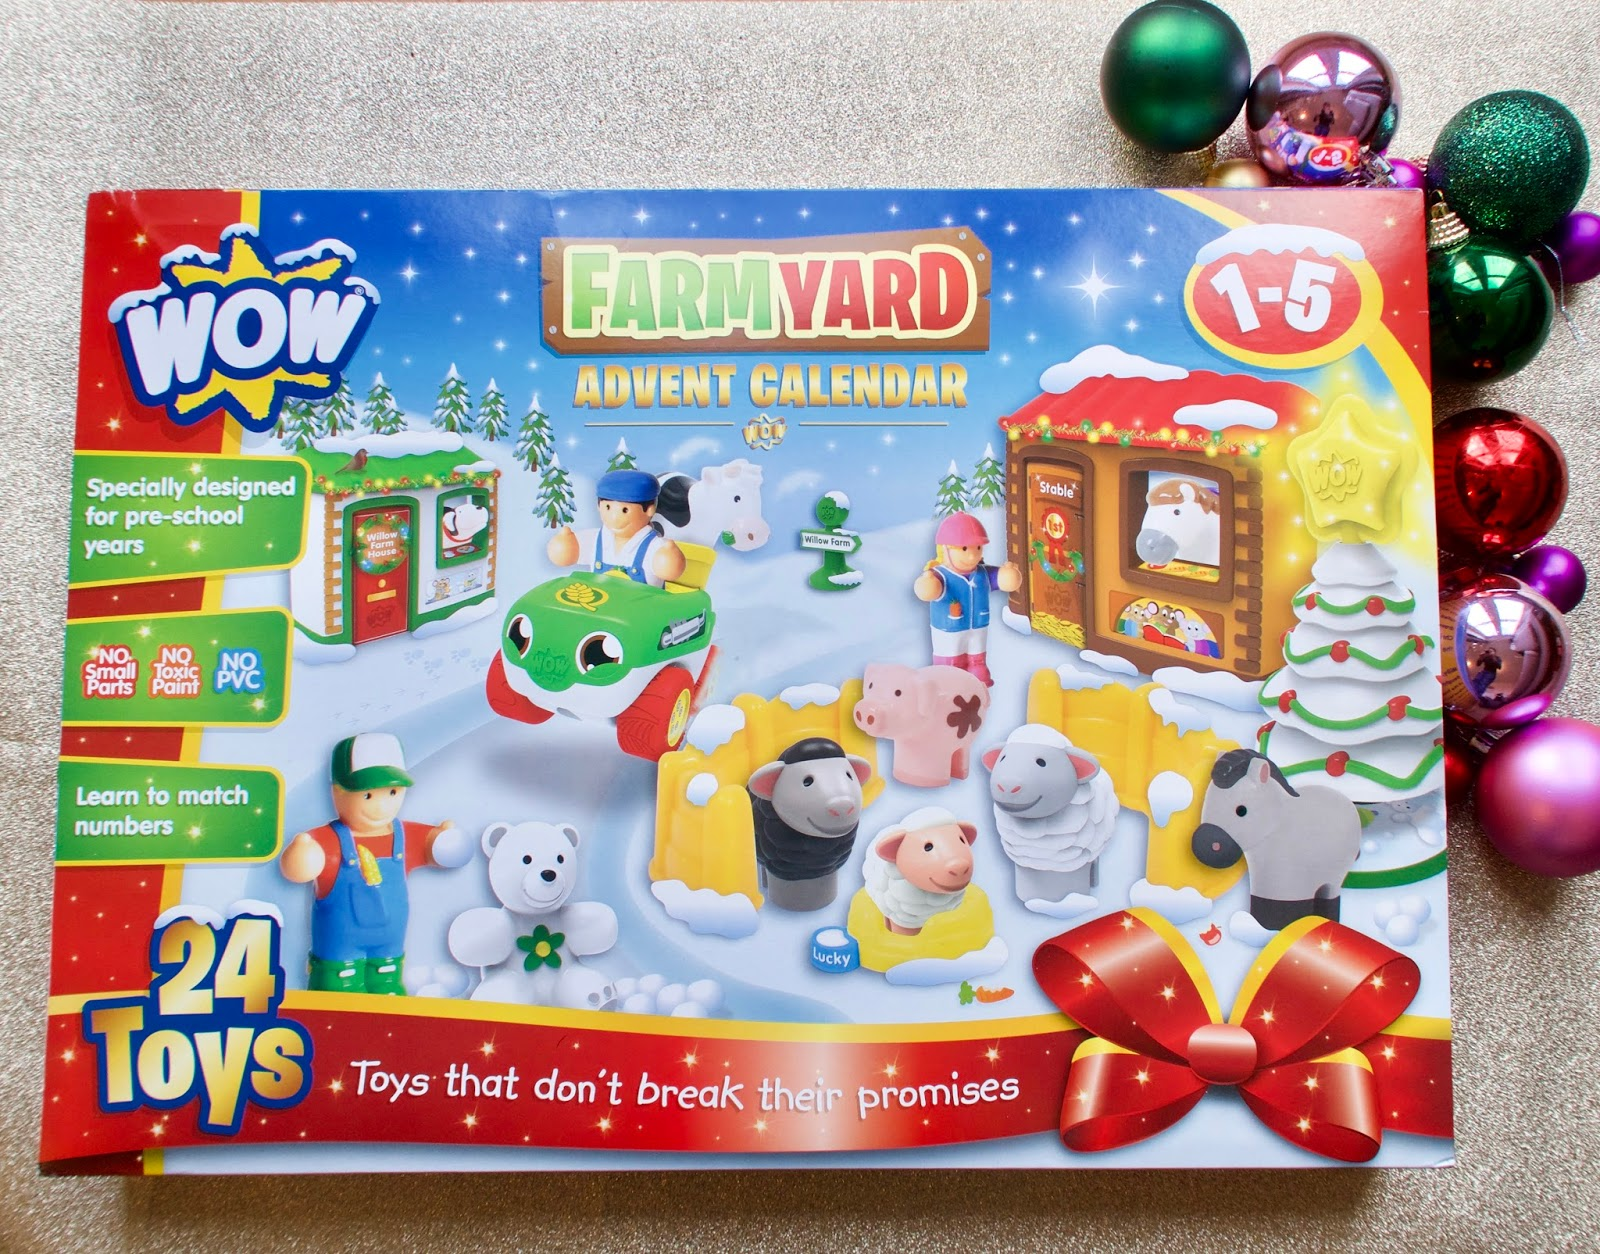 The Best Advent Calendars For Kids Kerry Louise Norris